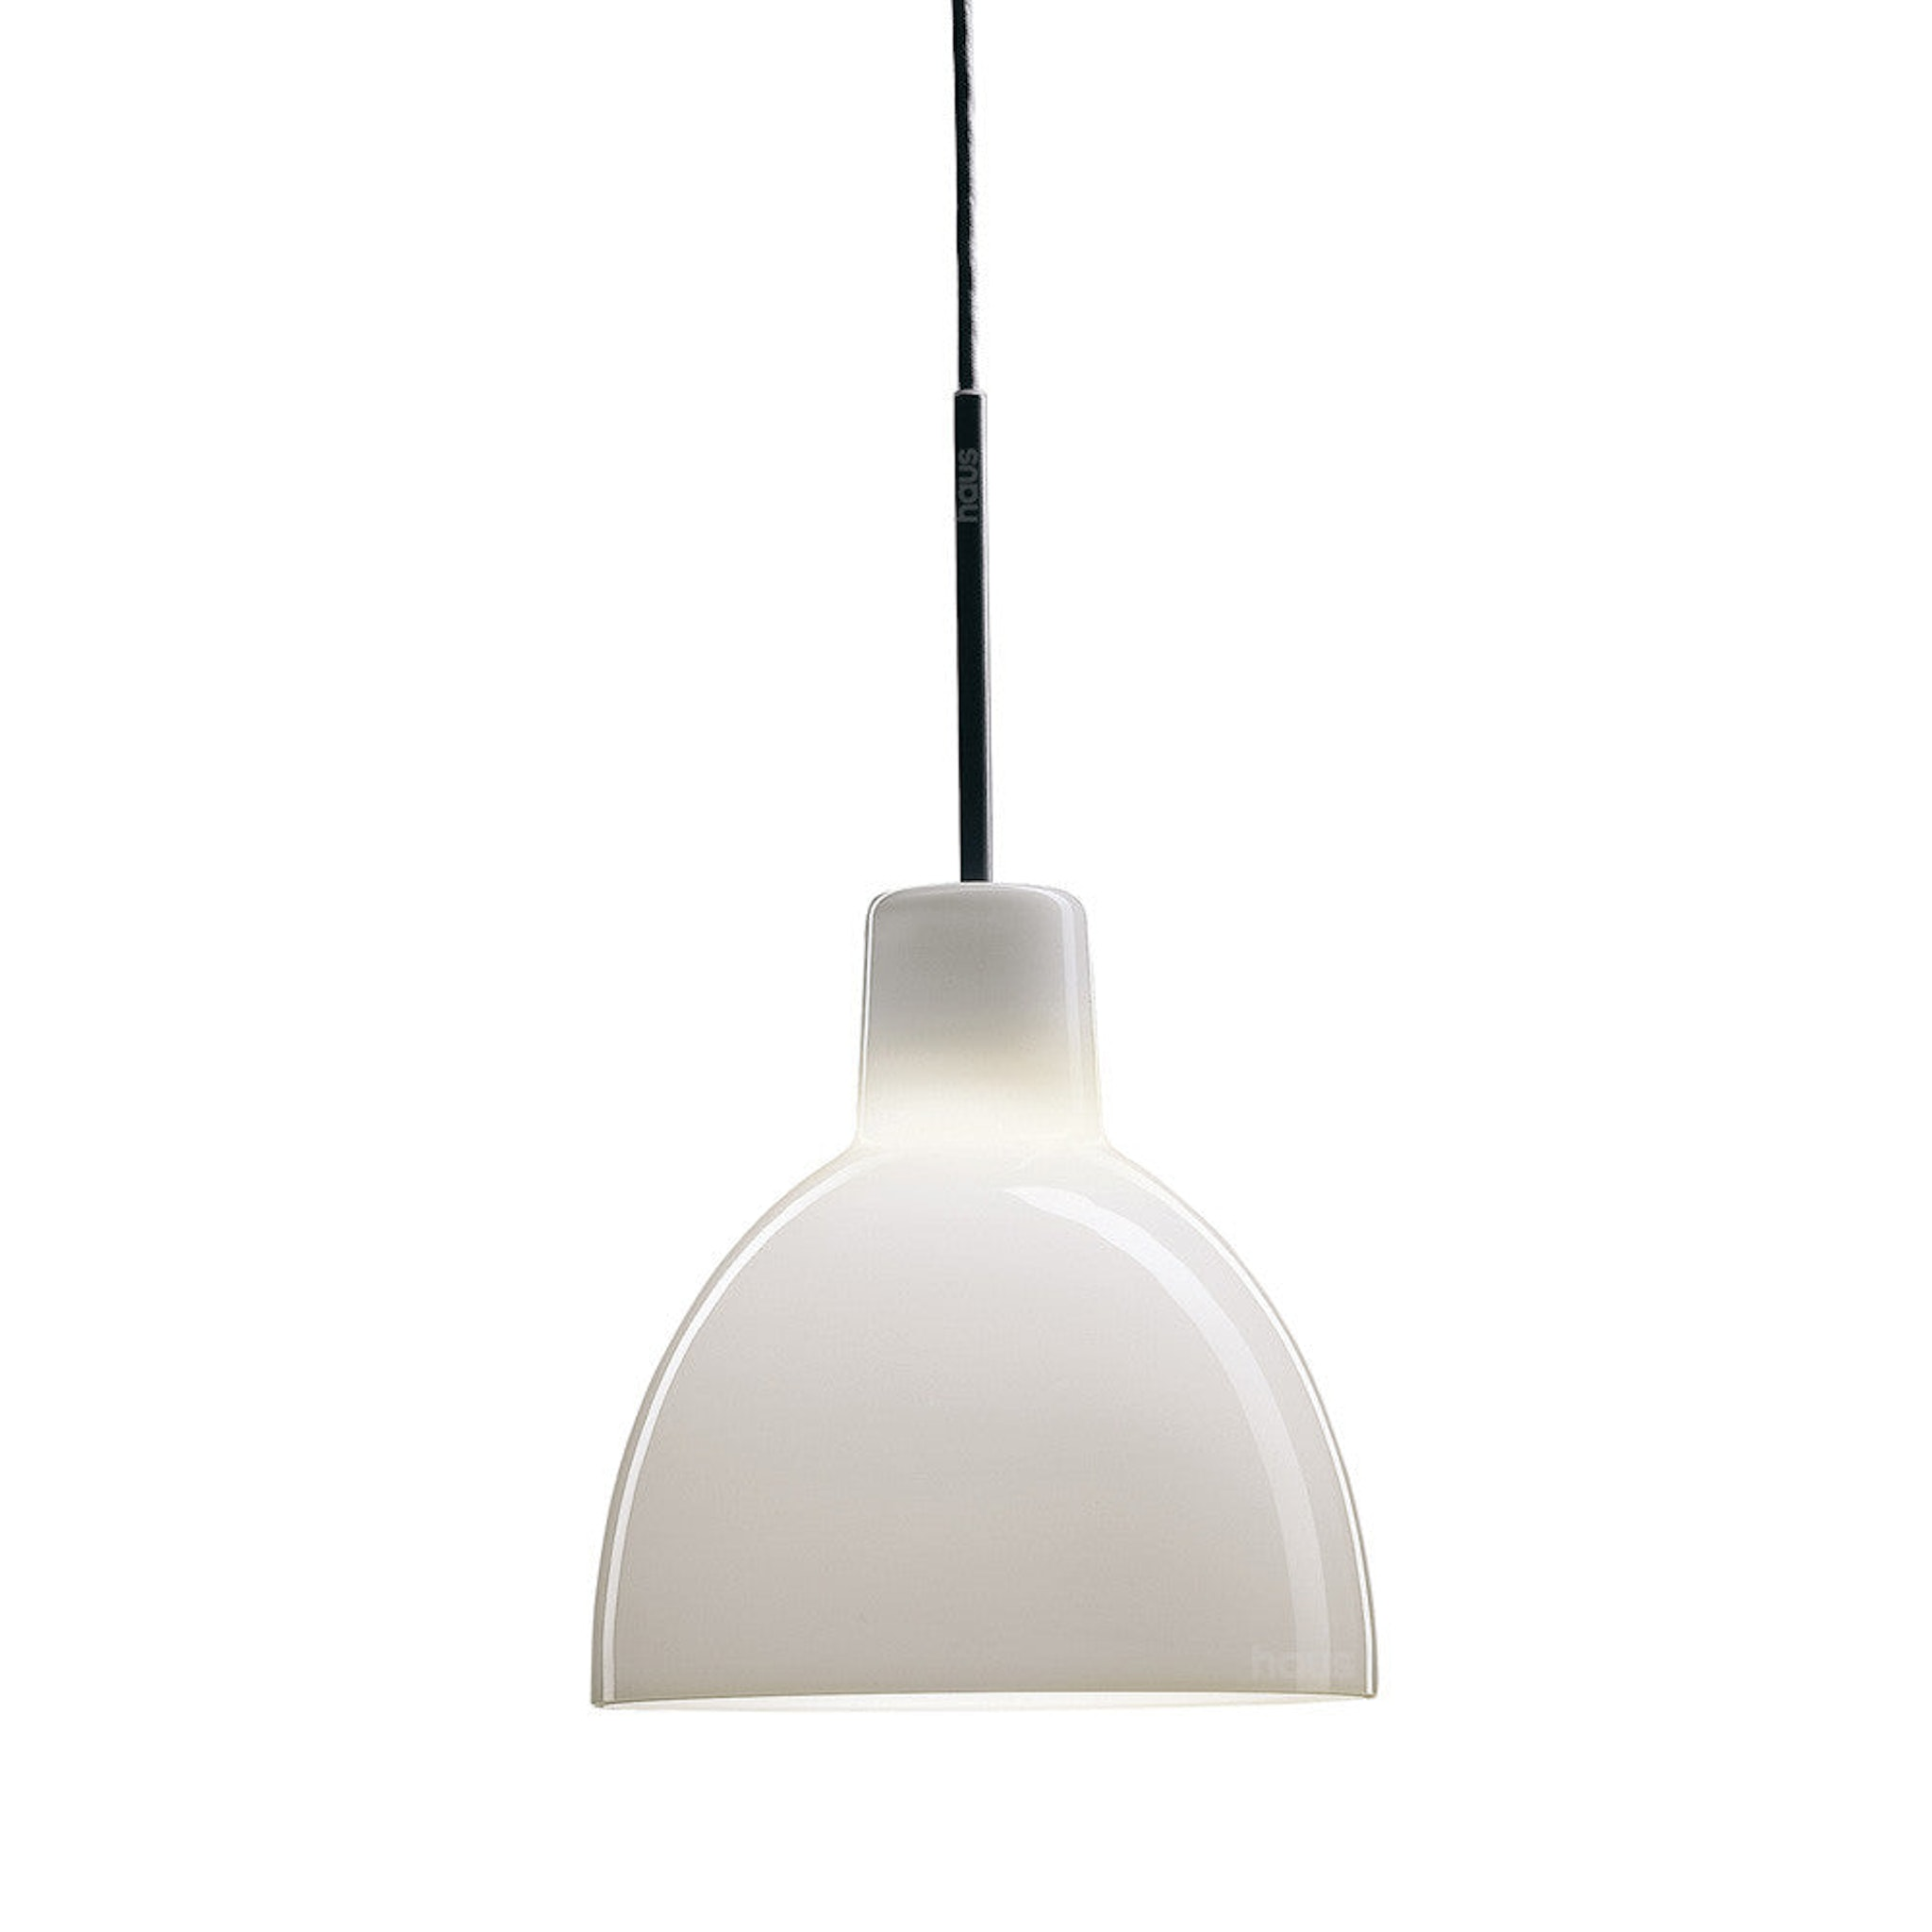 Toldbod 155/220 Glass Pendant by Louis Poulsen